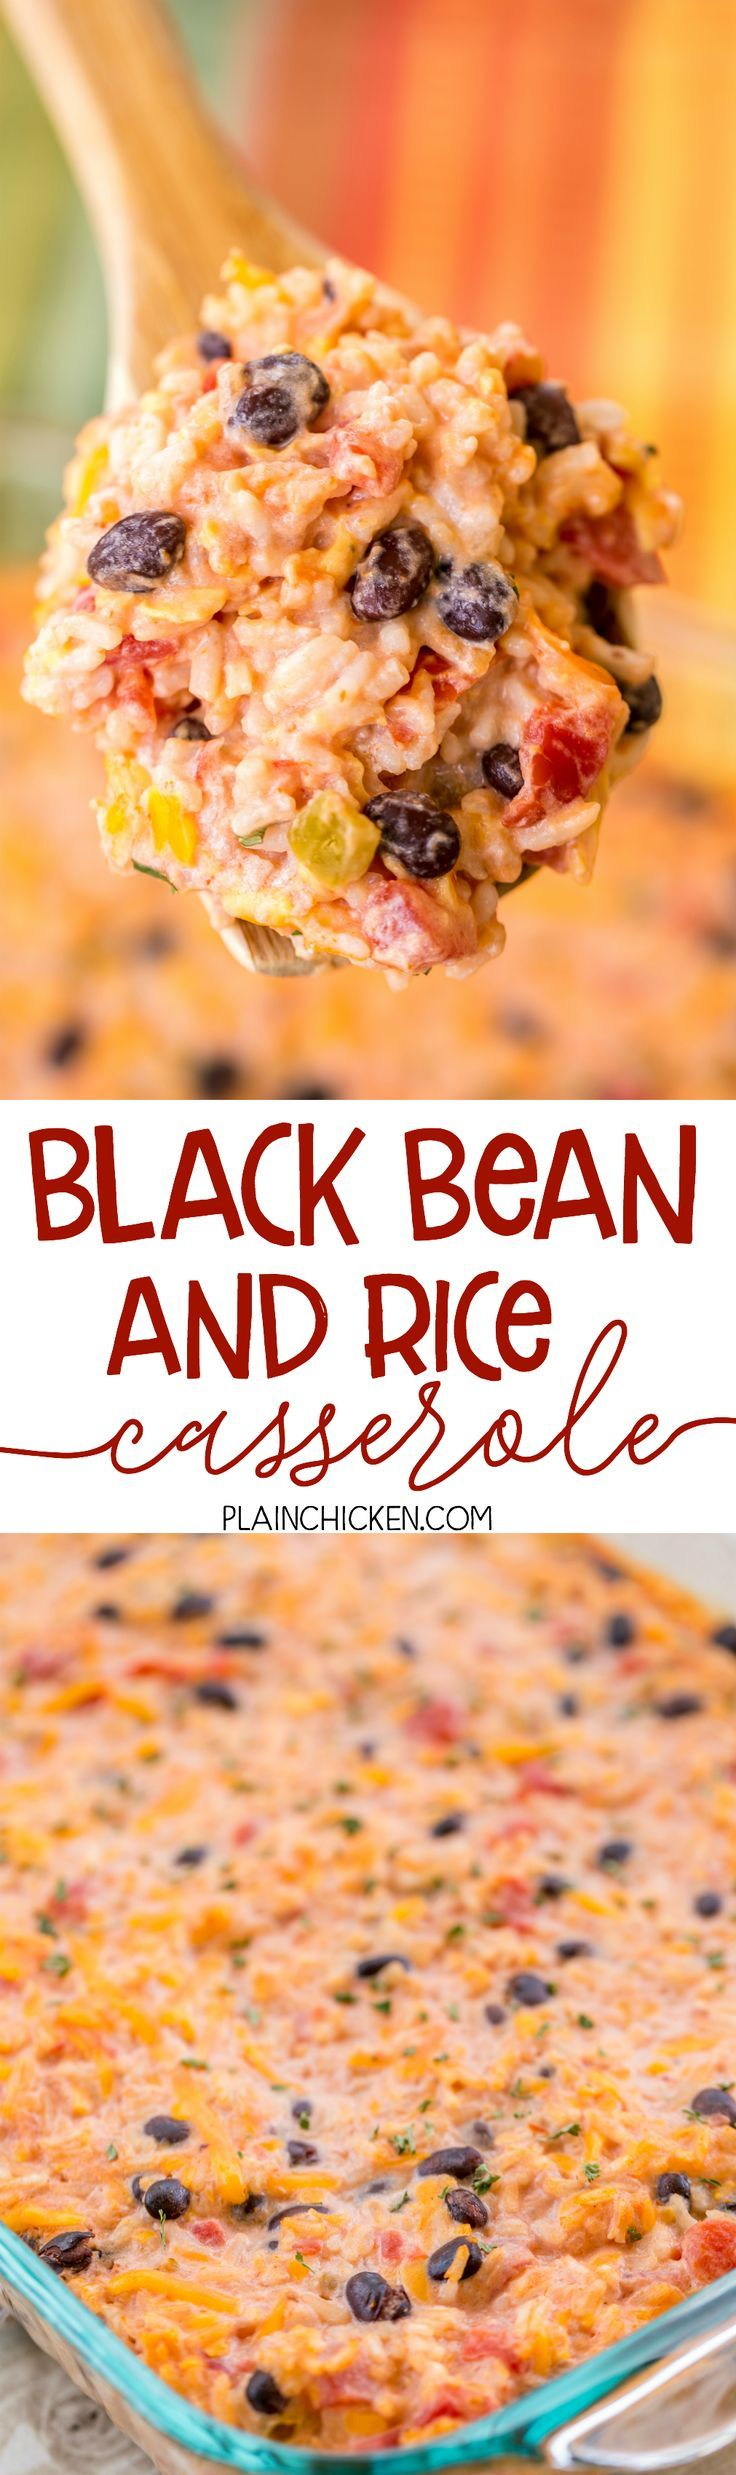 Black Bean and Rice Casserole